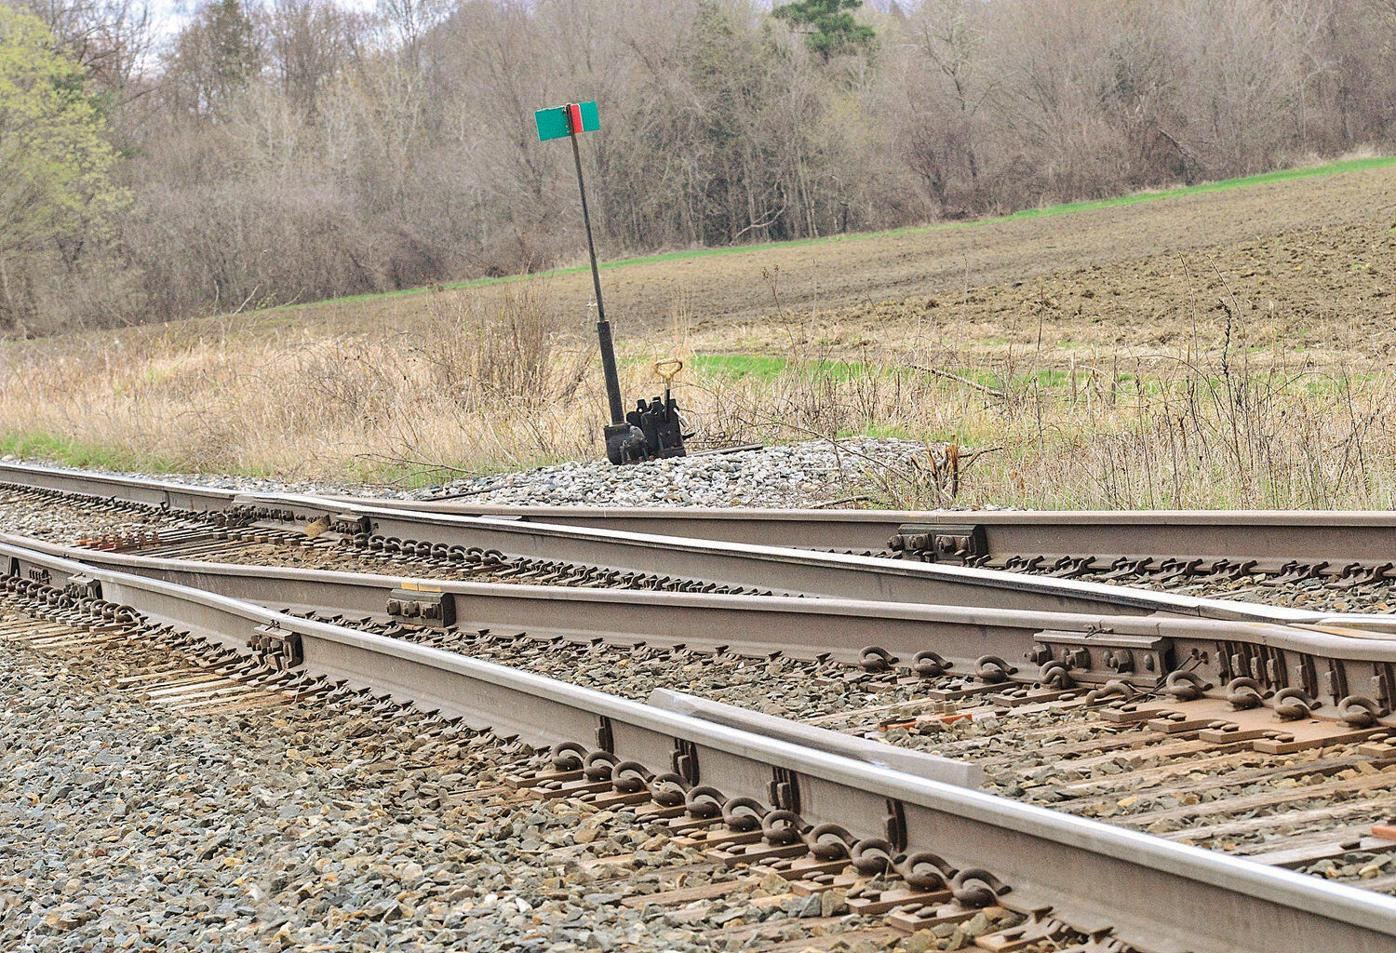 Tainted water could go by rail